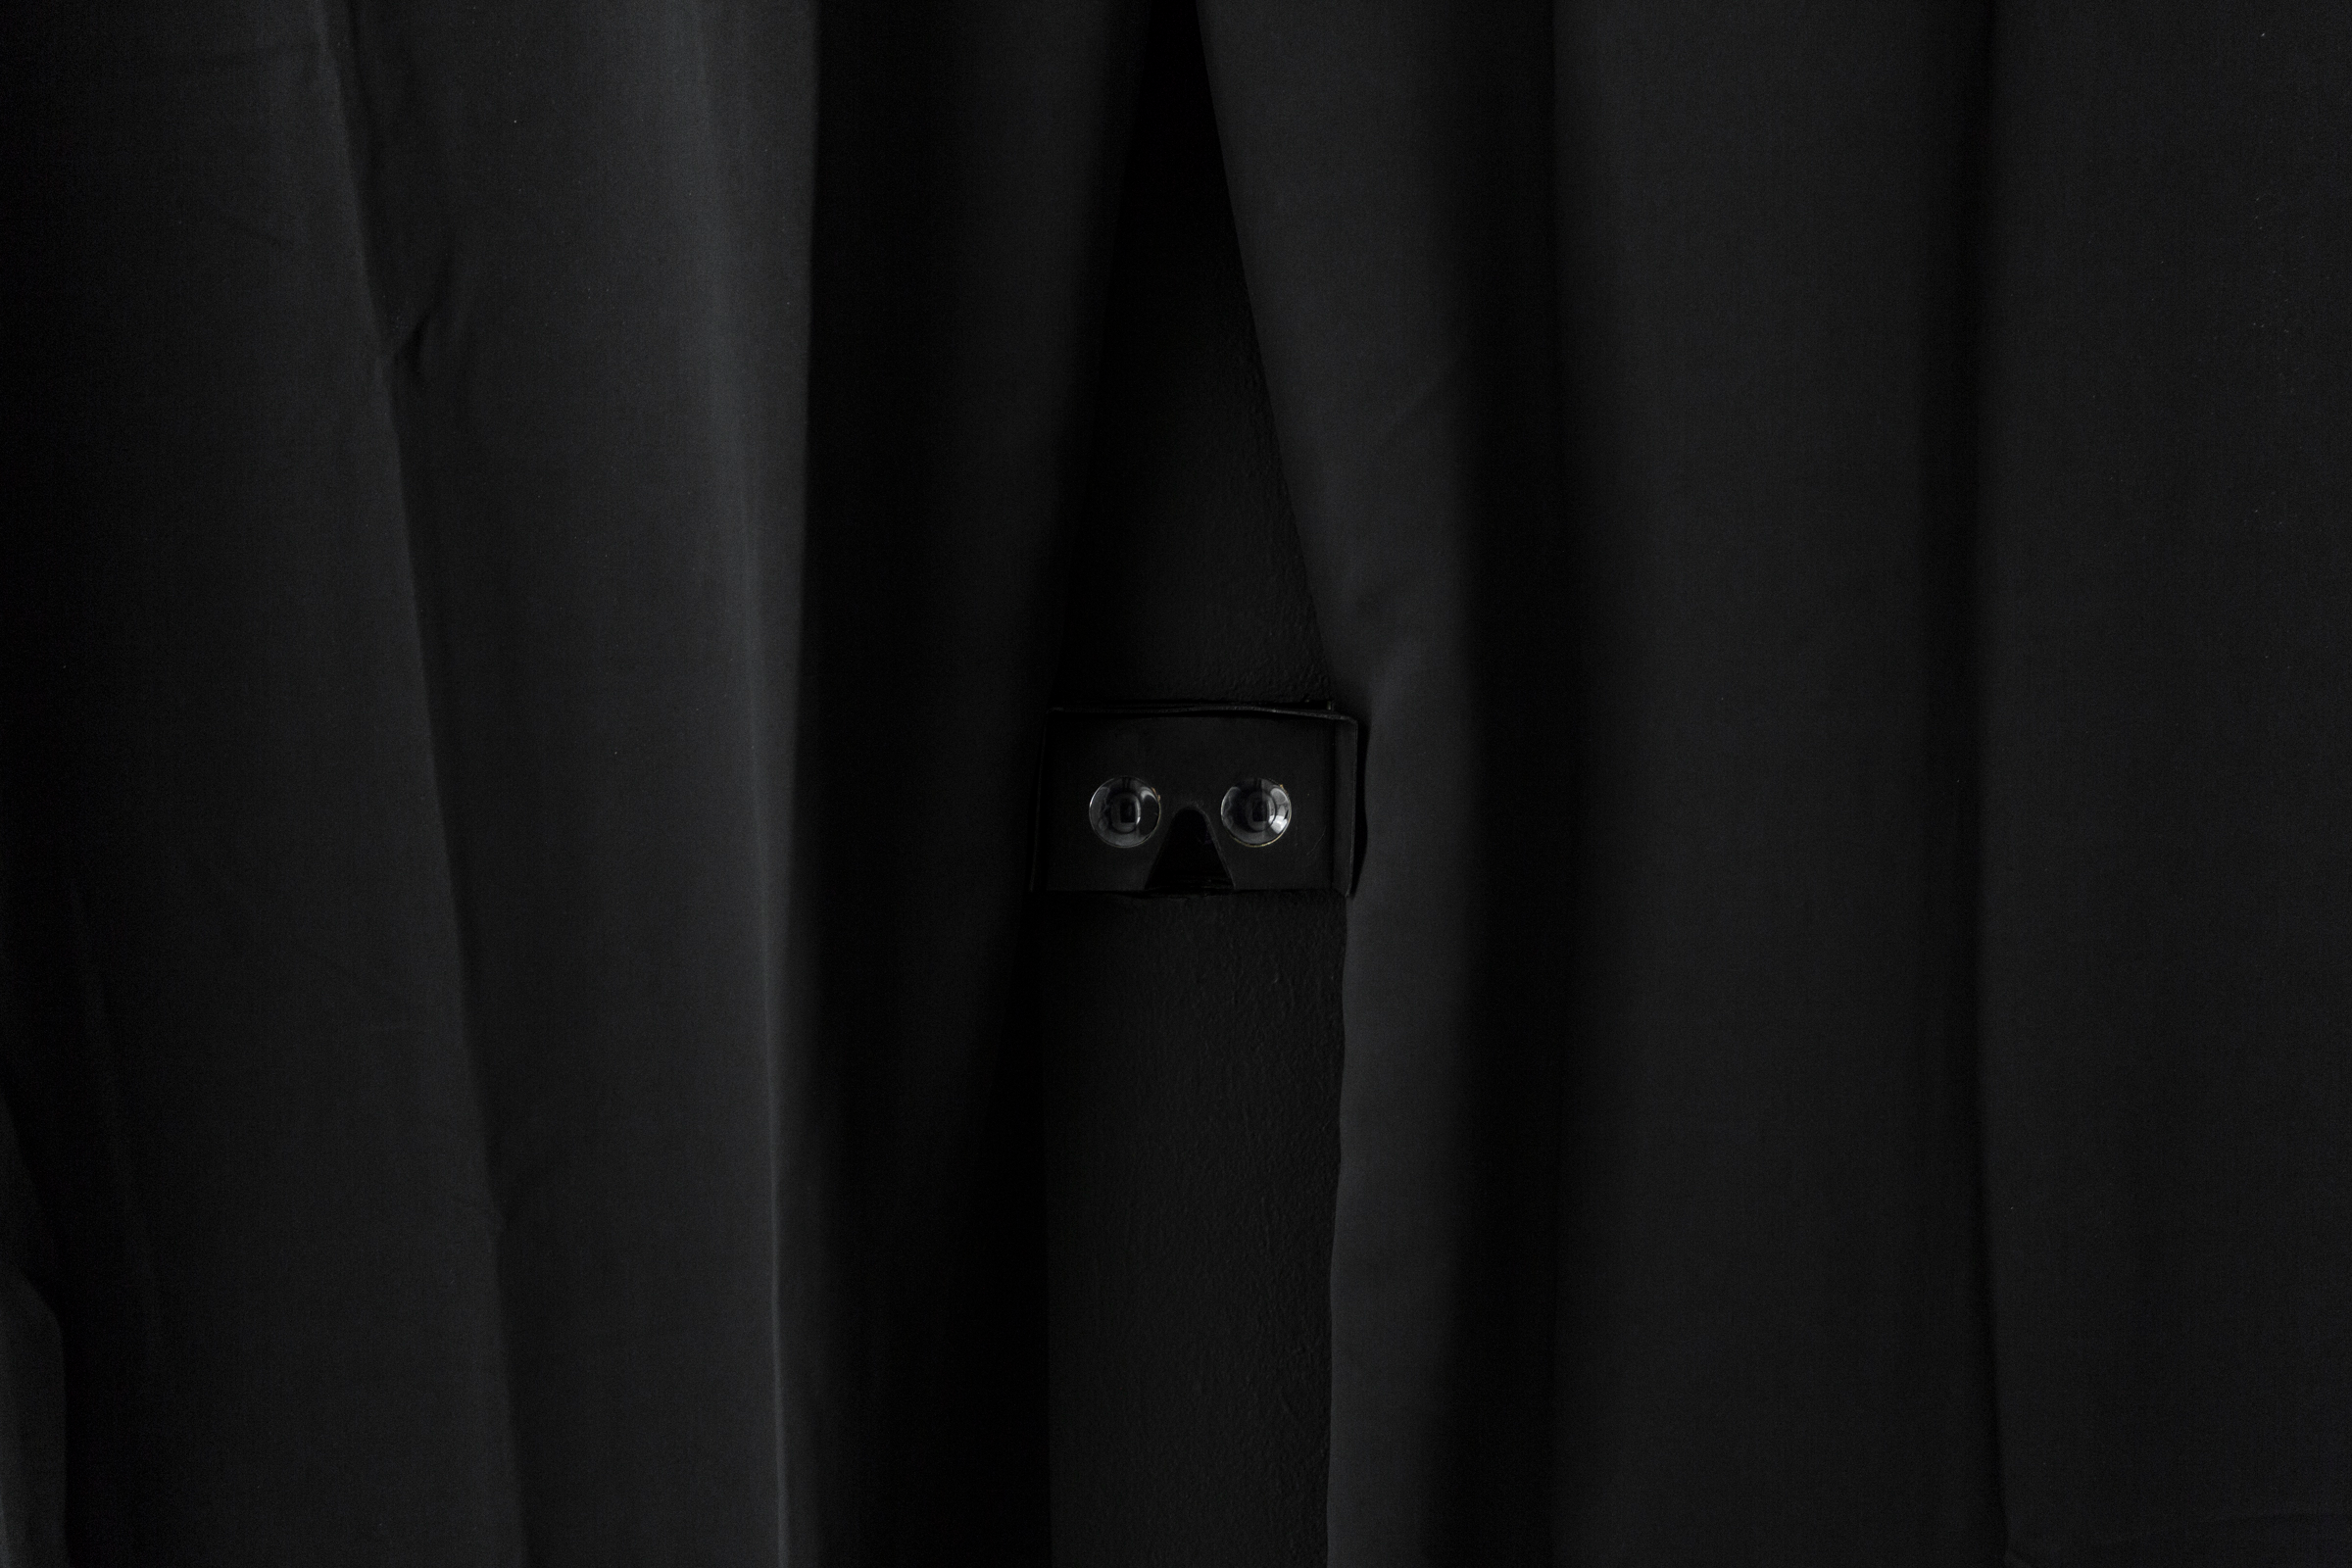 a medium close-up shot of the Google cardboard device embedded in a black wall and surrounded by black curtains. The viewer uses this as a peephole to peer into the virtual reality experience, made possible by stereoscopic image technology on a phone.